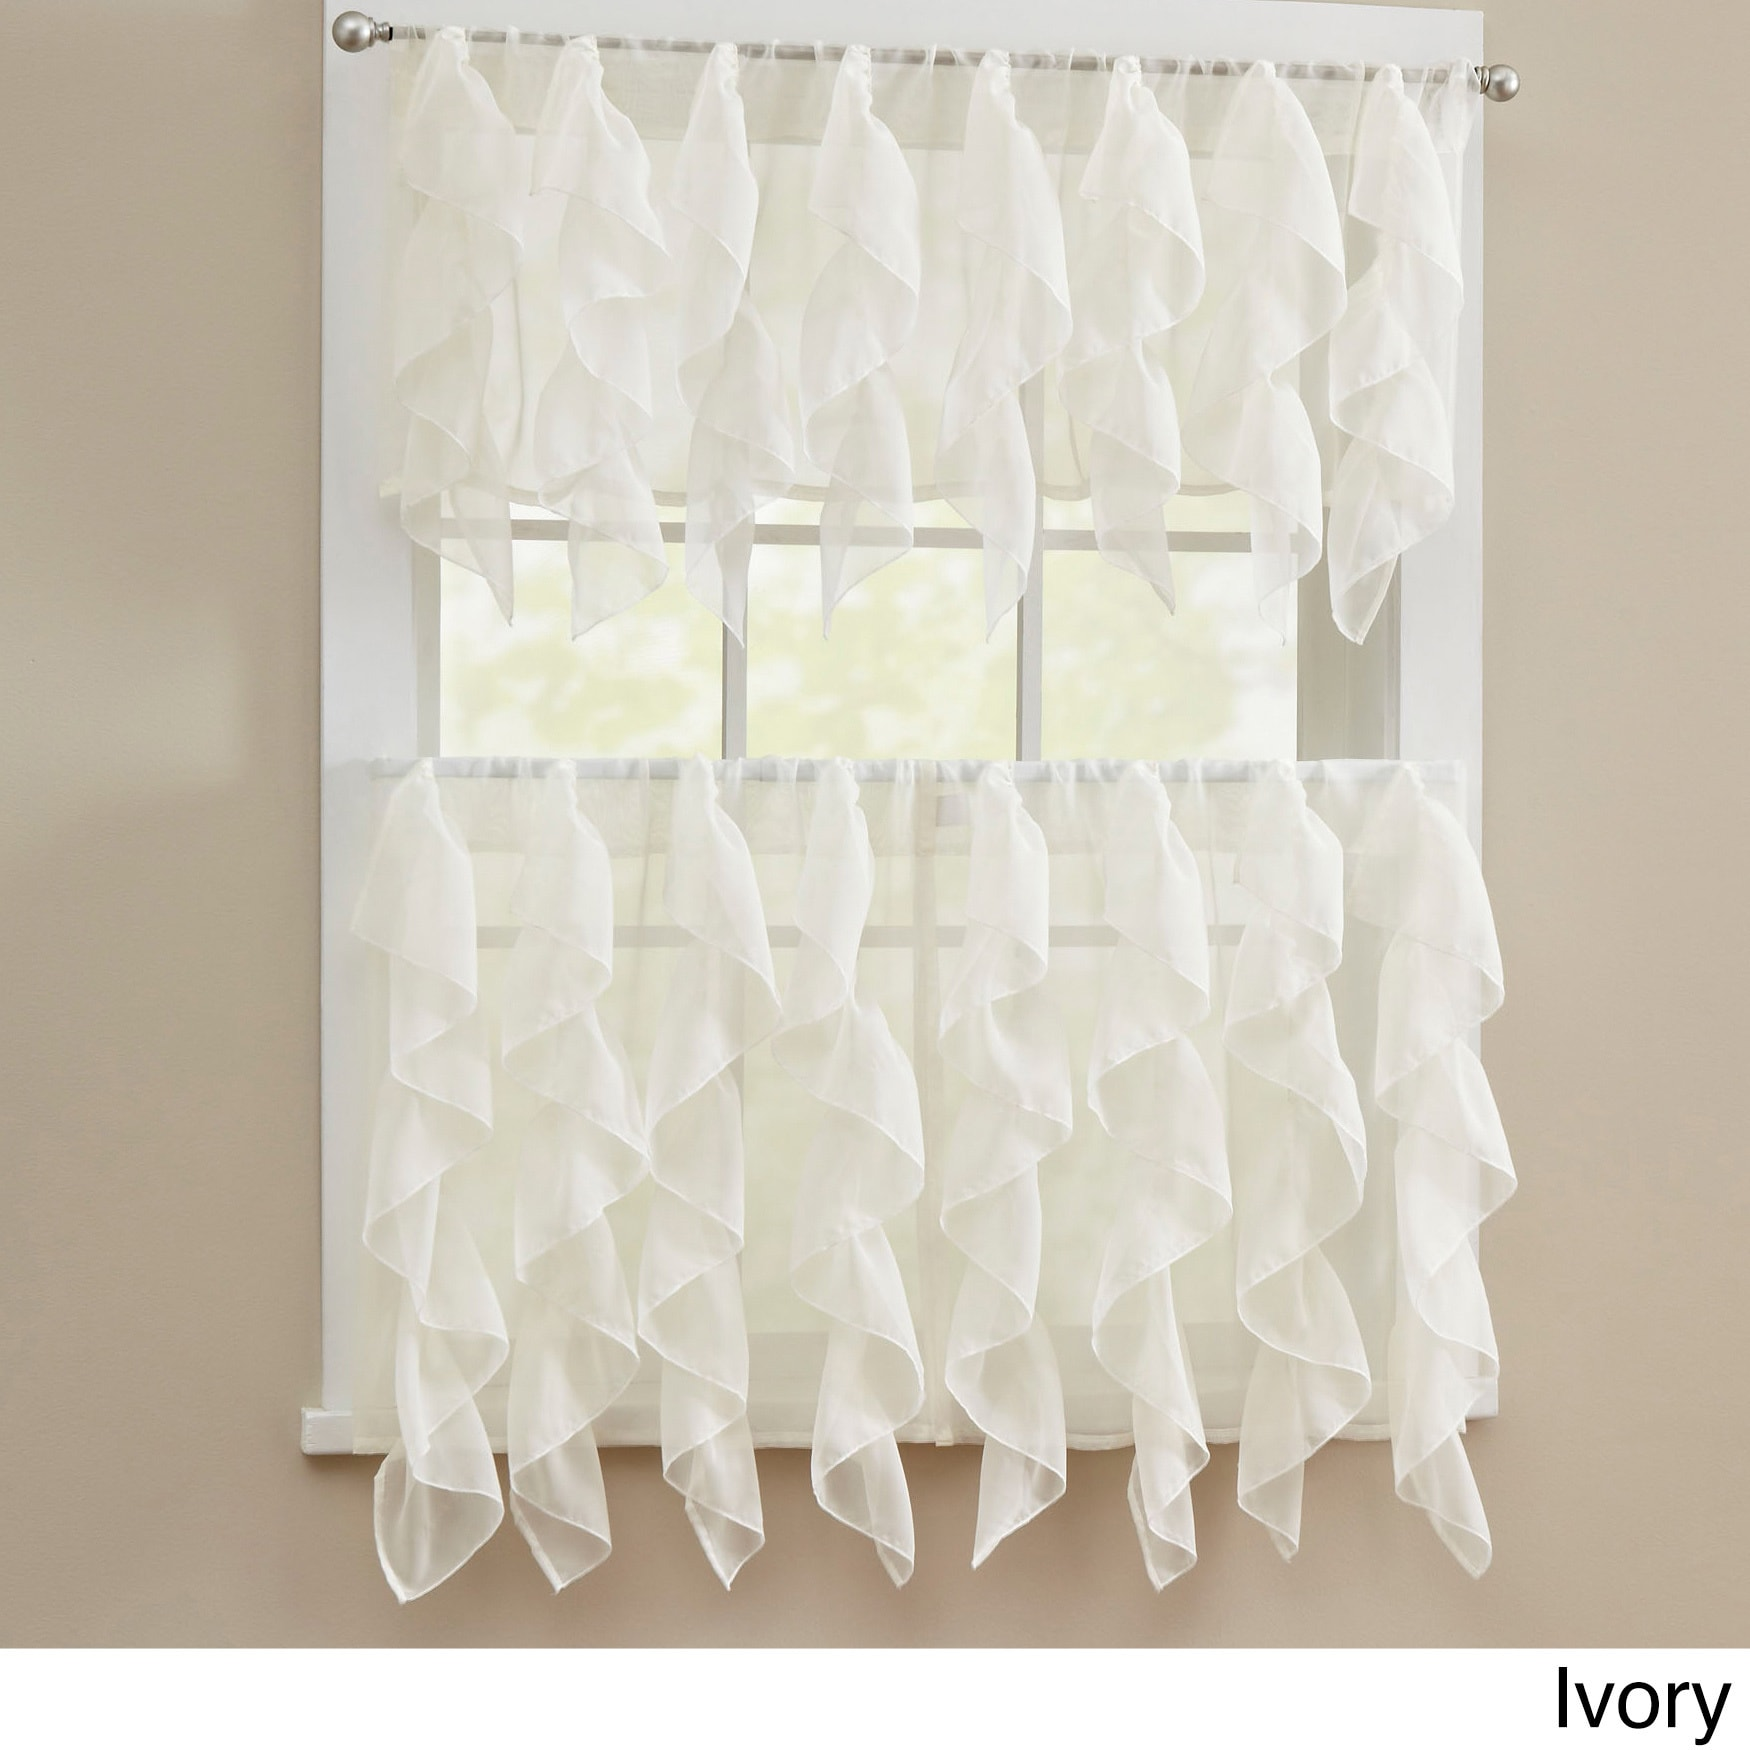 Shop Chic Sheer Voile Vertical Ruffled Tier Window Curtain Valance Or